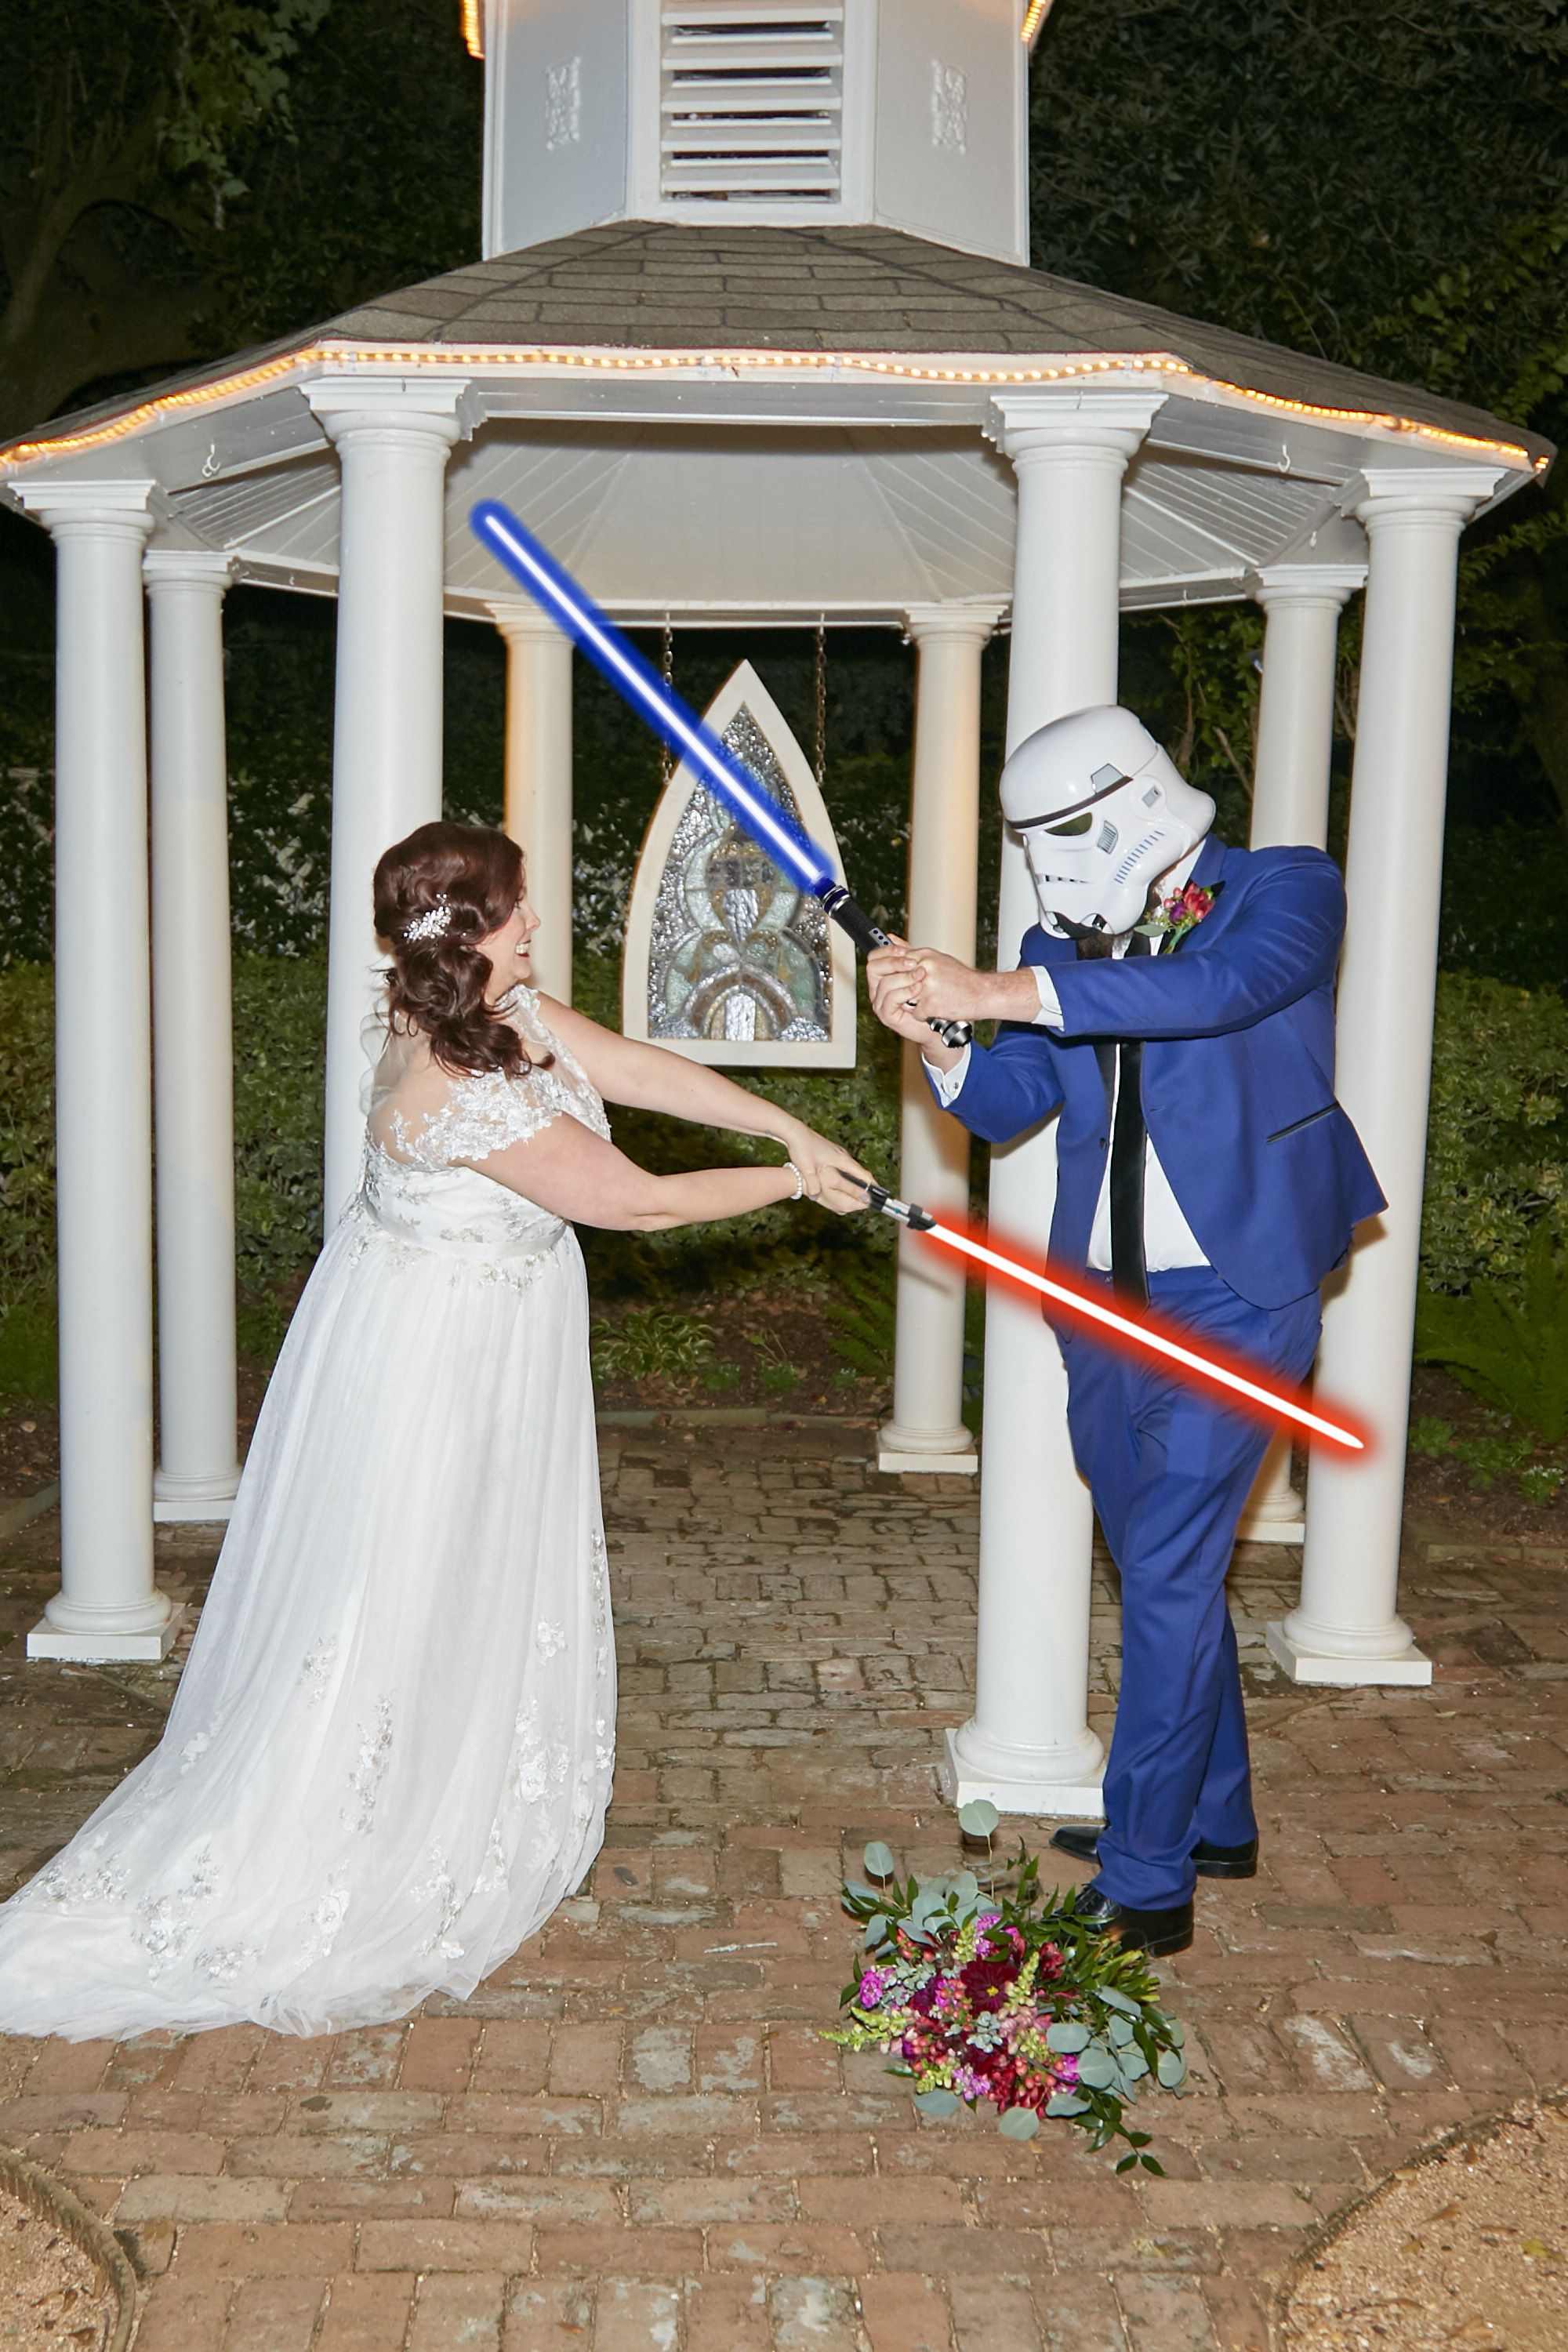 Star Wars Wedding Light Sabers and Storm Trooper for the win